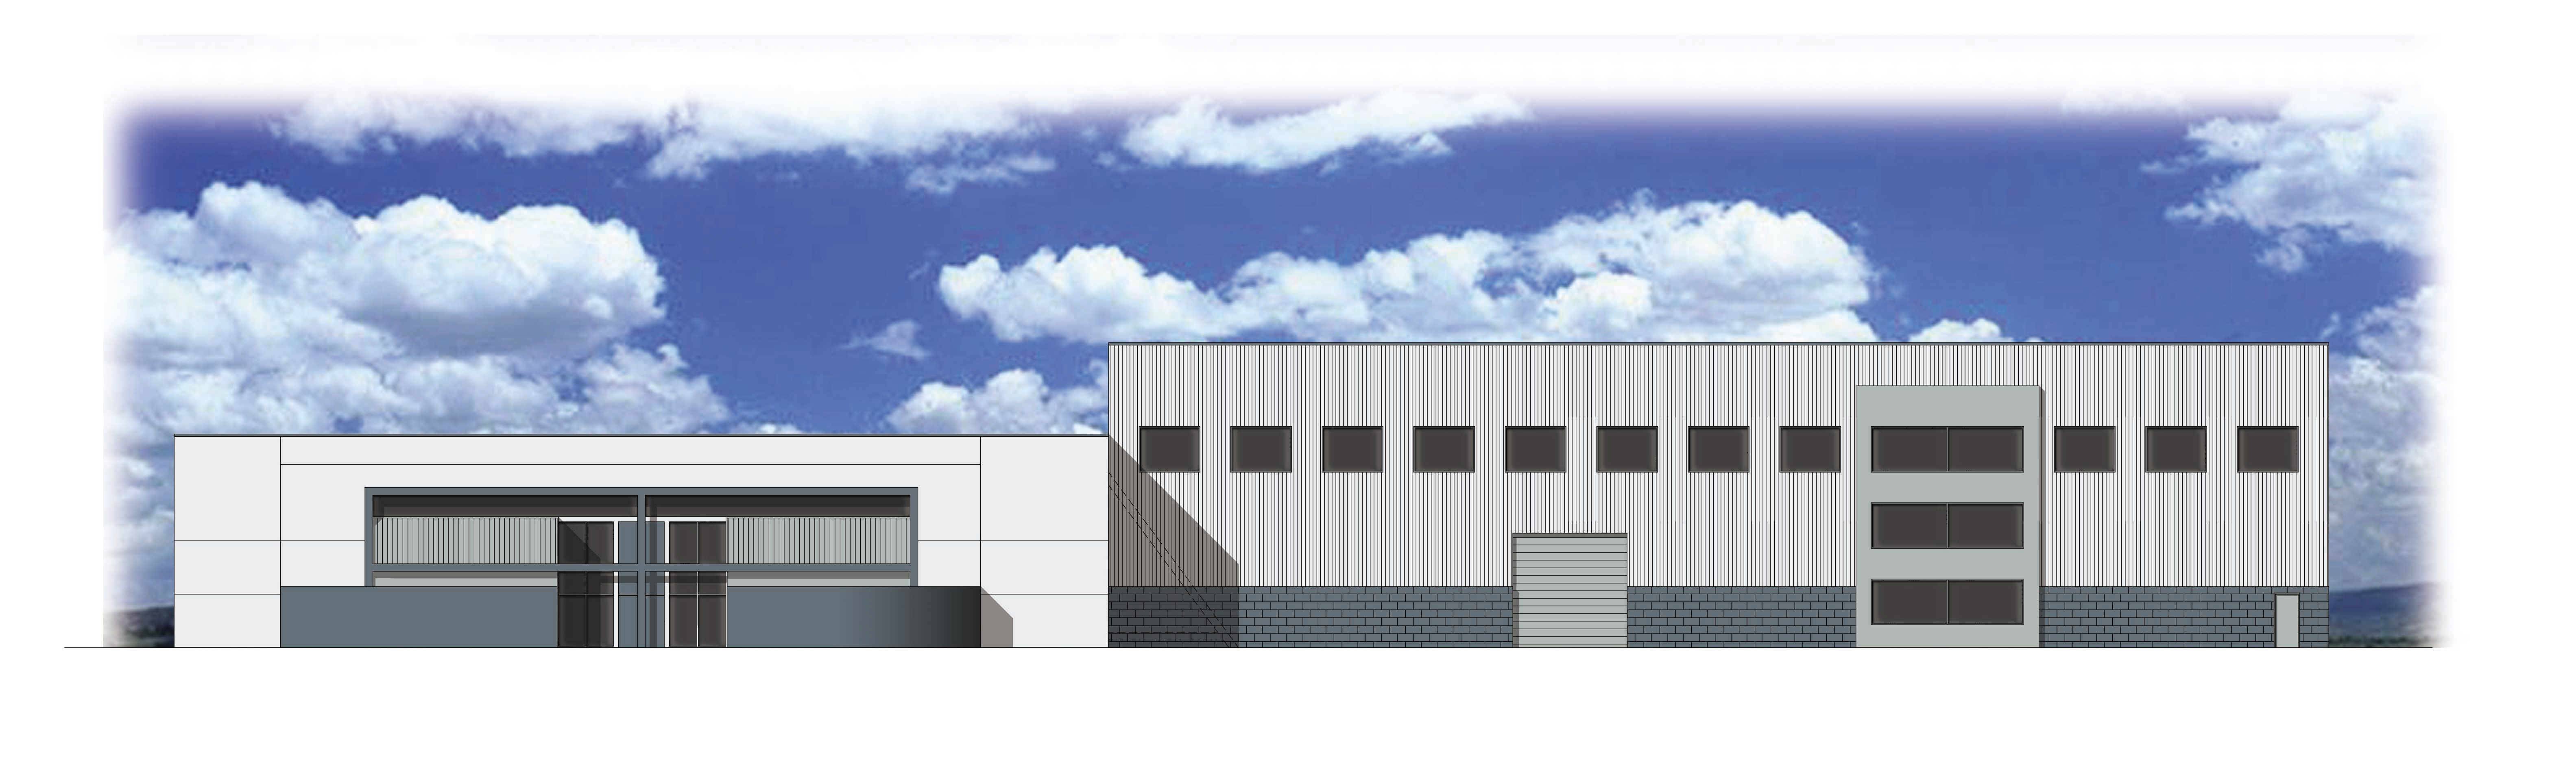 Warehouse building elevations joy studio design gallery for Warehouse building plans